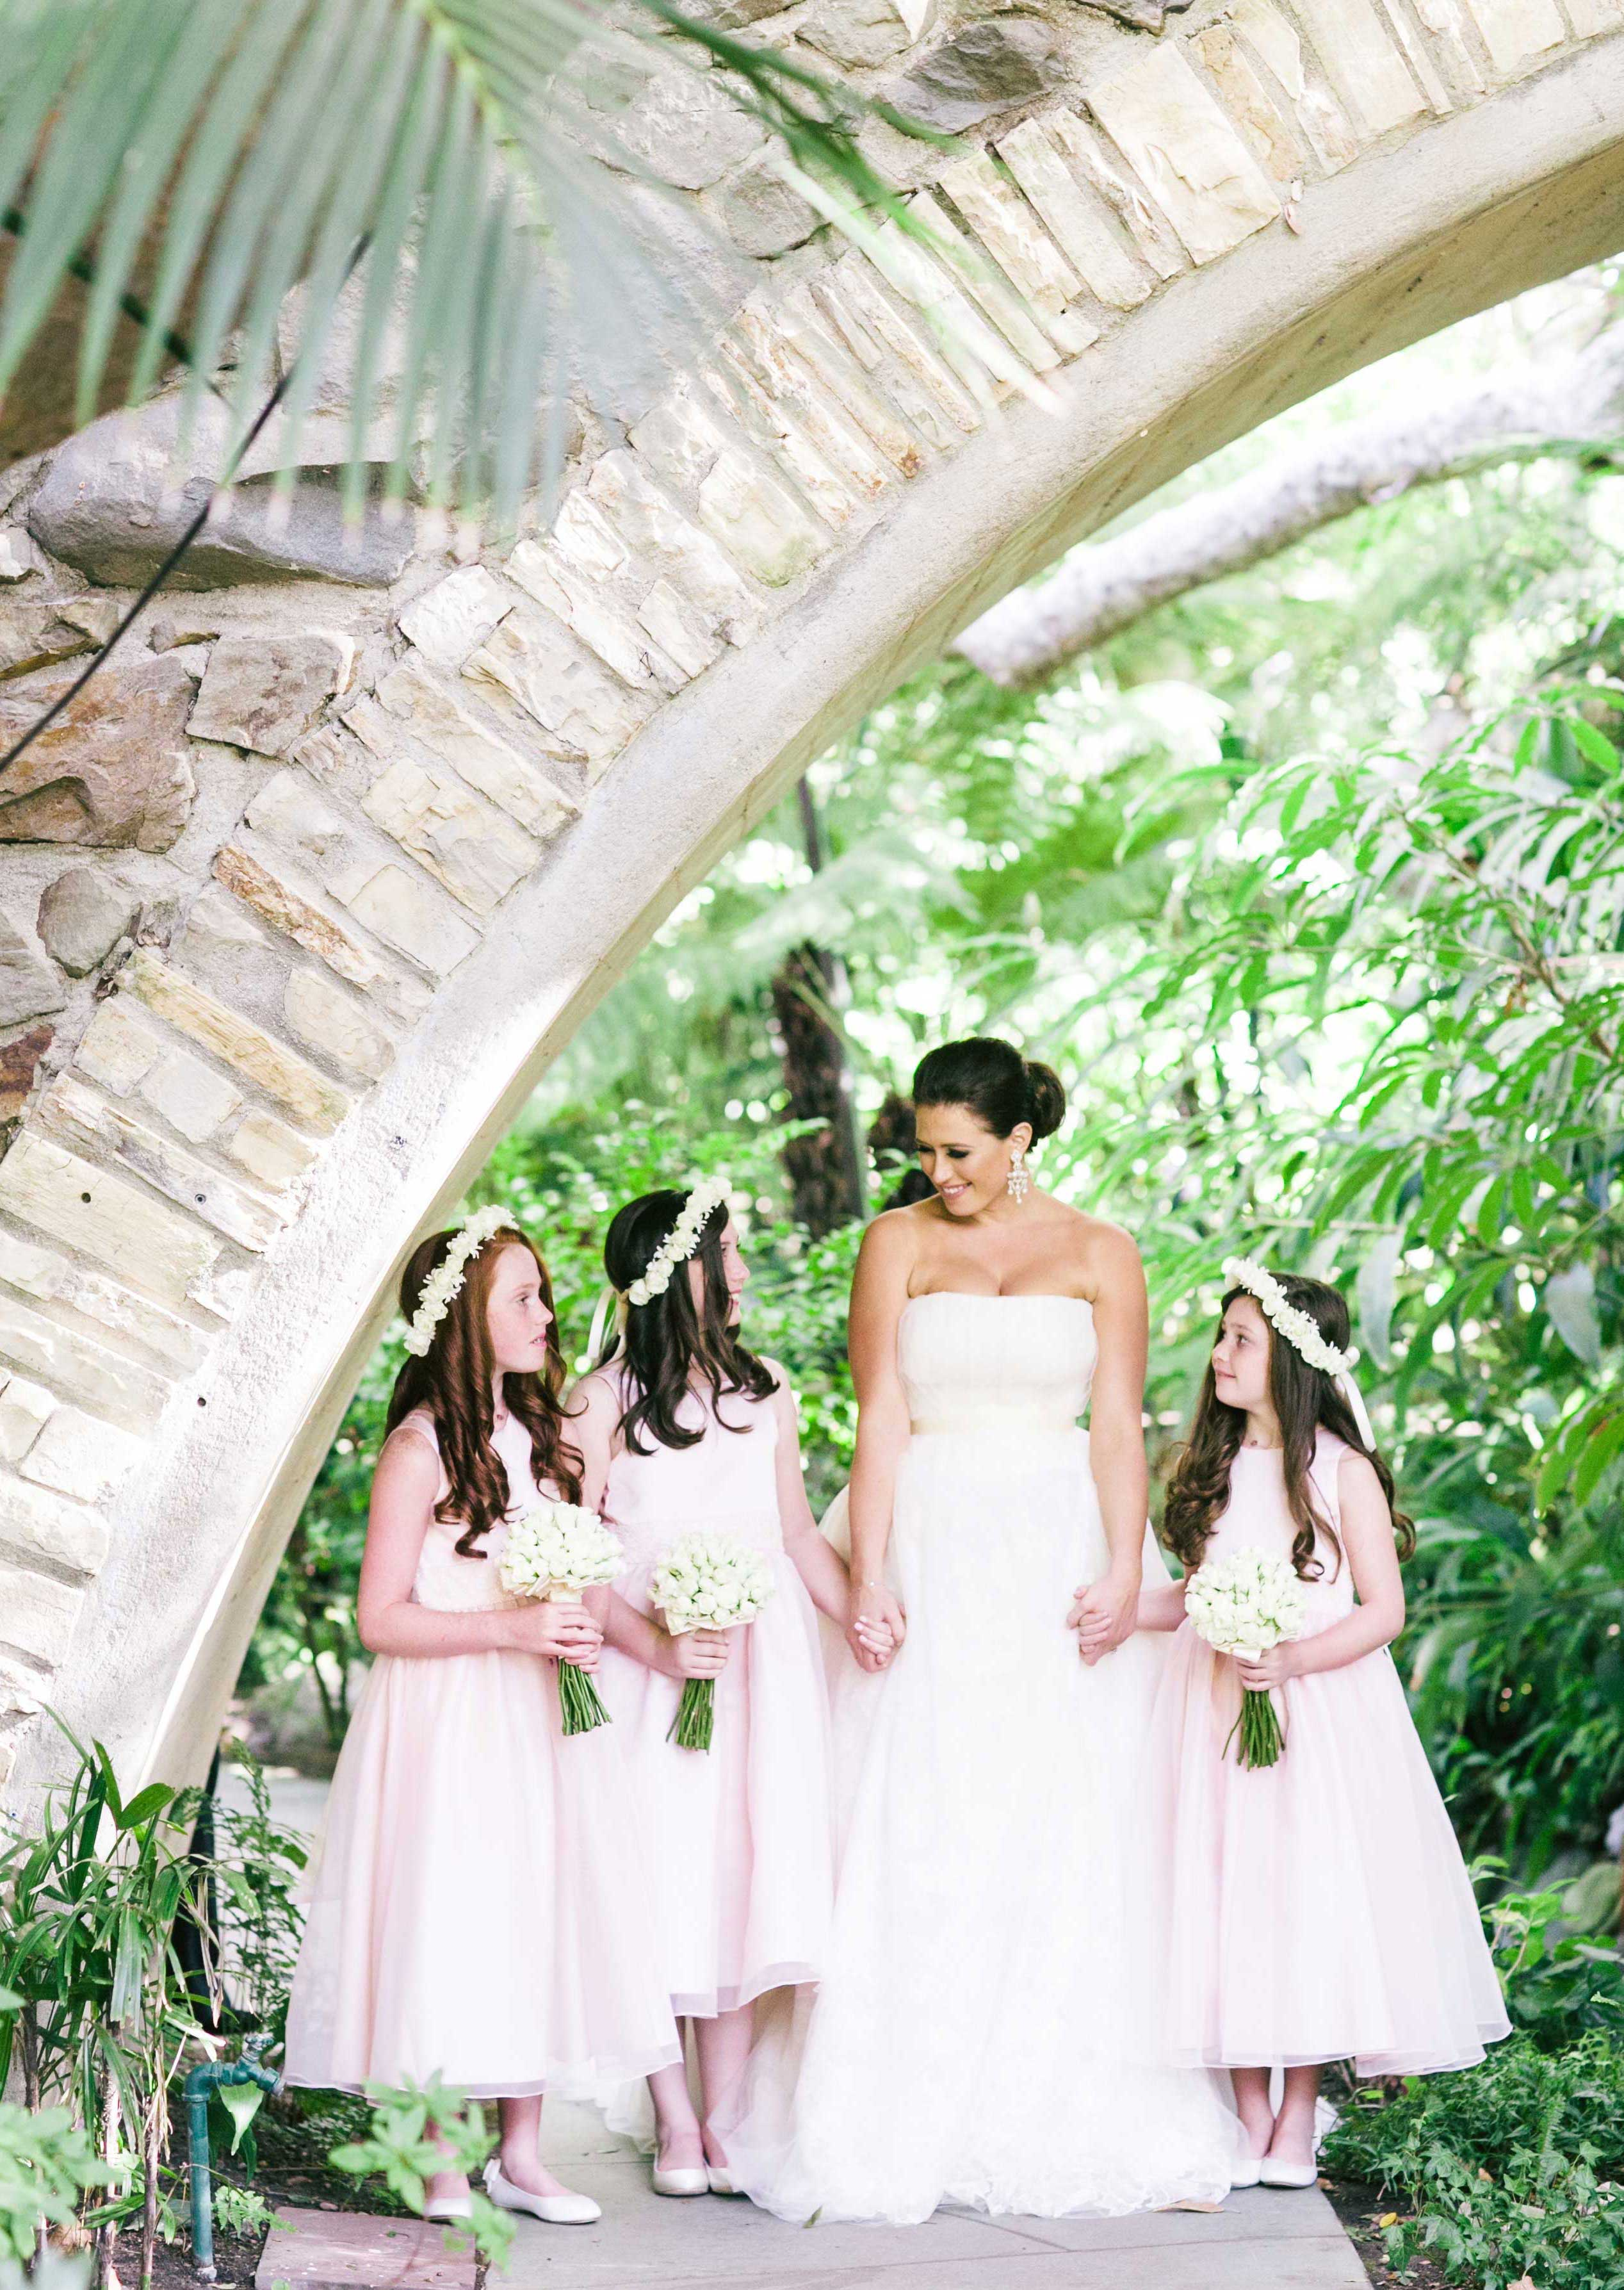 Flower girls at Hotel Bel-Air in pink dresses